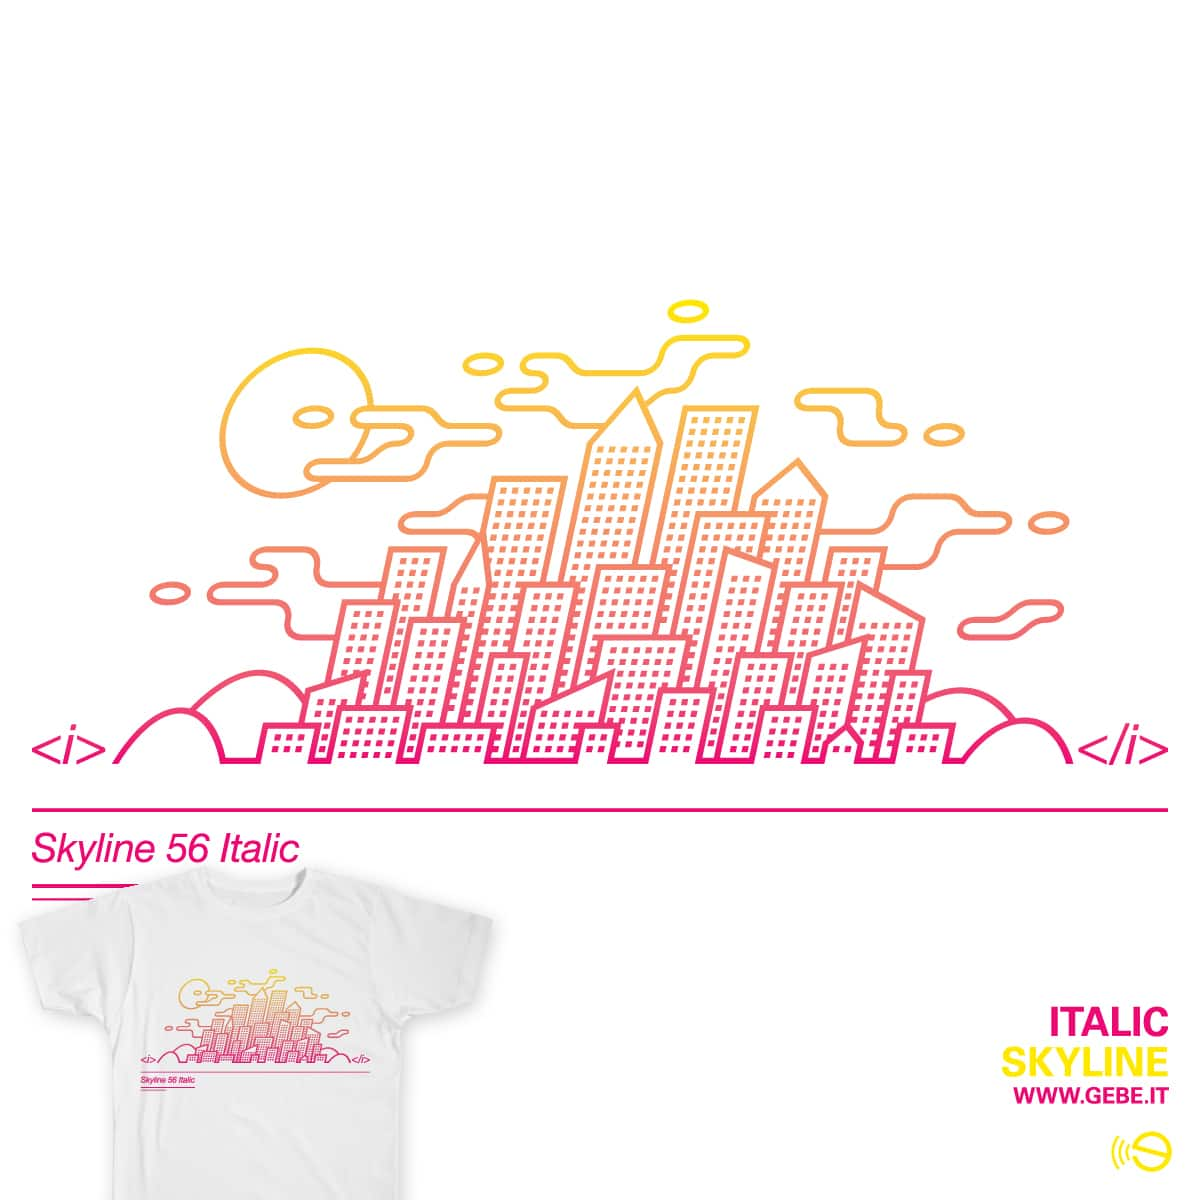 Italic skyline by gebe on Threadless